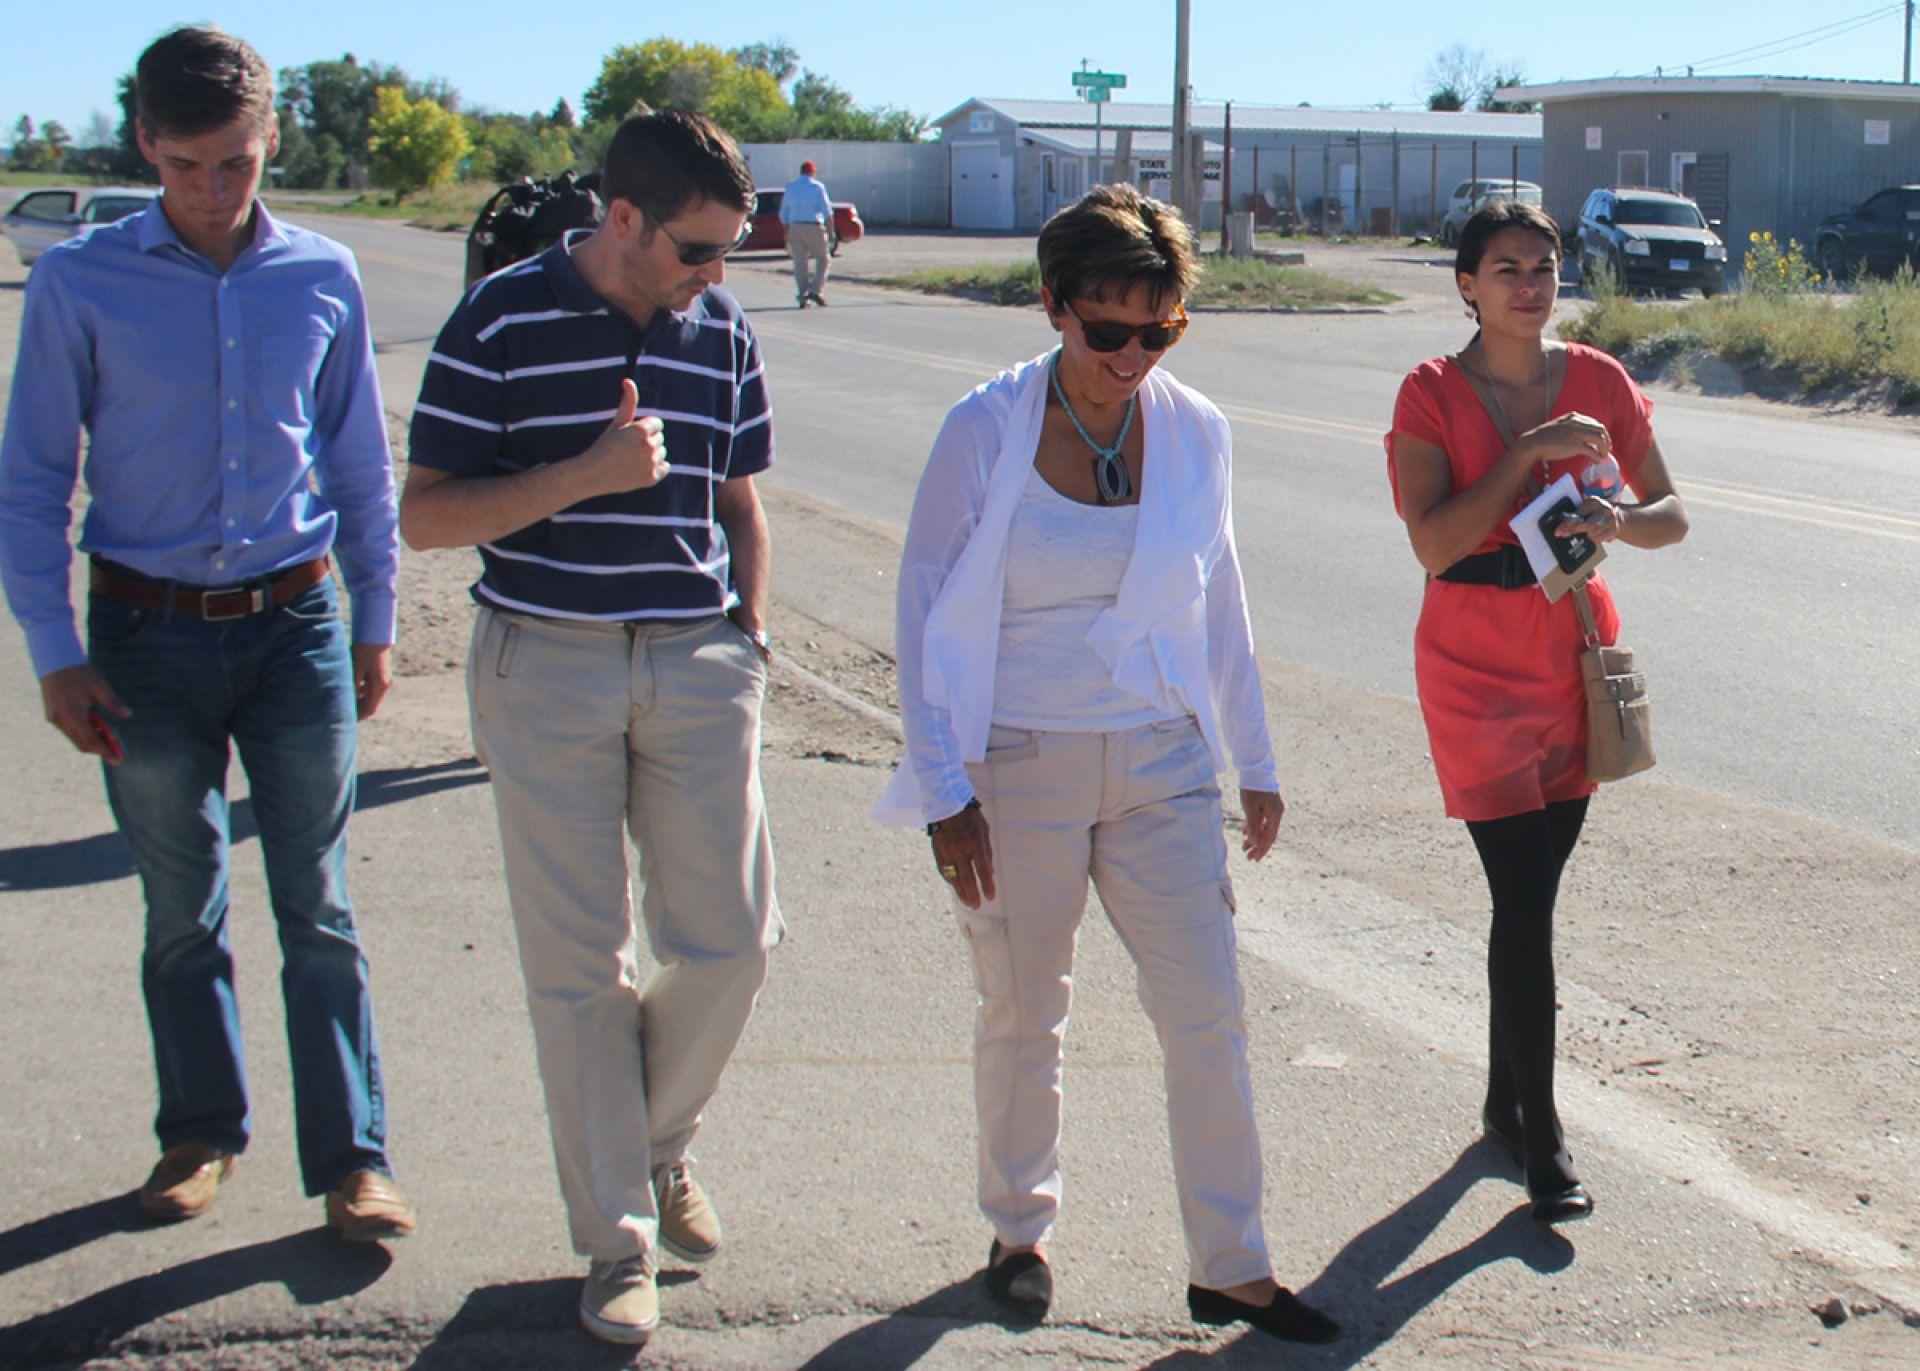 Sen. Patty Pansing Brooks toured Whiteclay on September 28 to develop solutions against alcoholism.